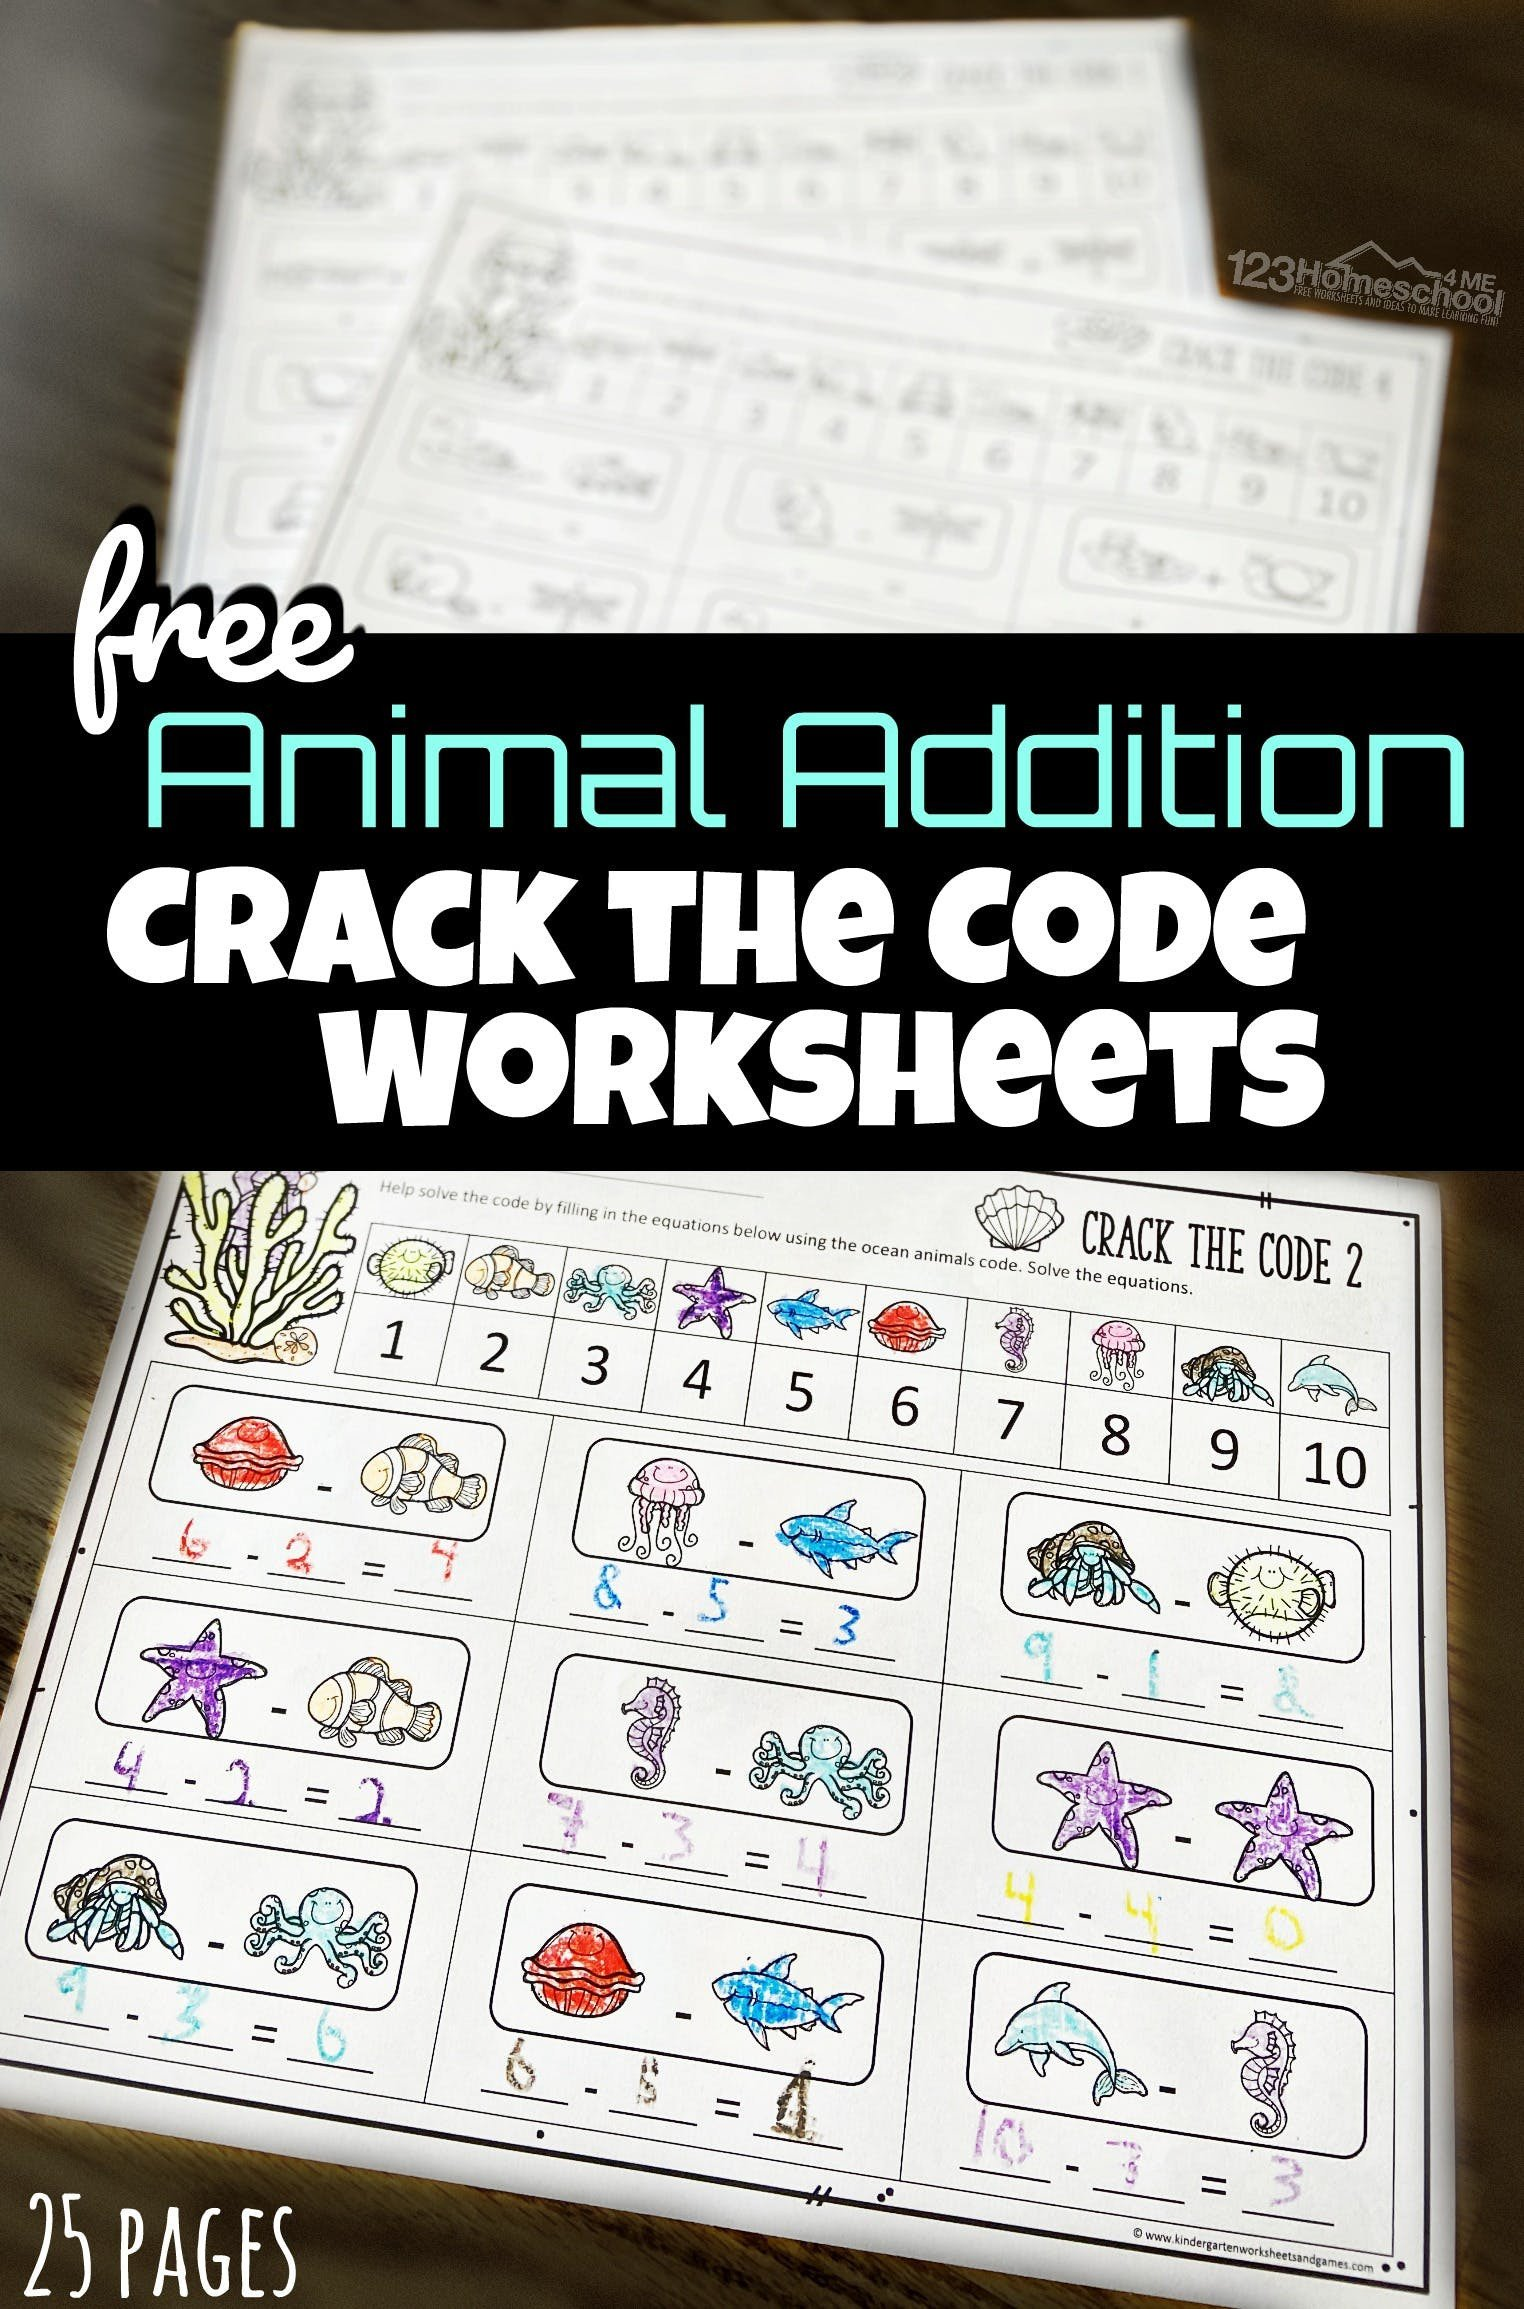 Crack the Code Math Worksheet Math Crack the Code Worksheets